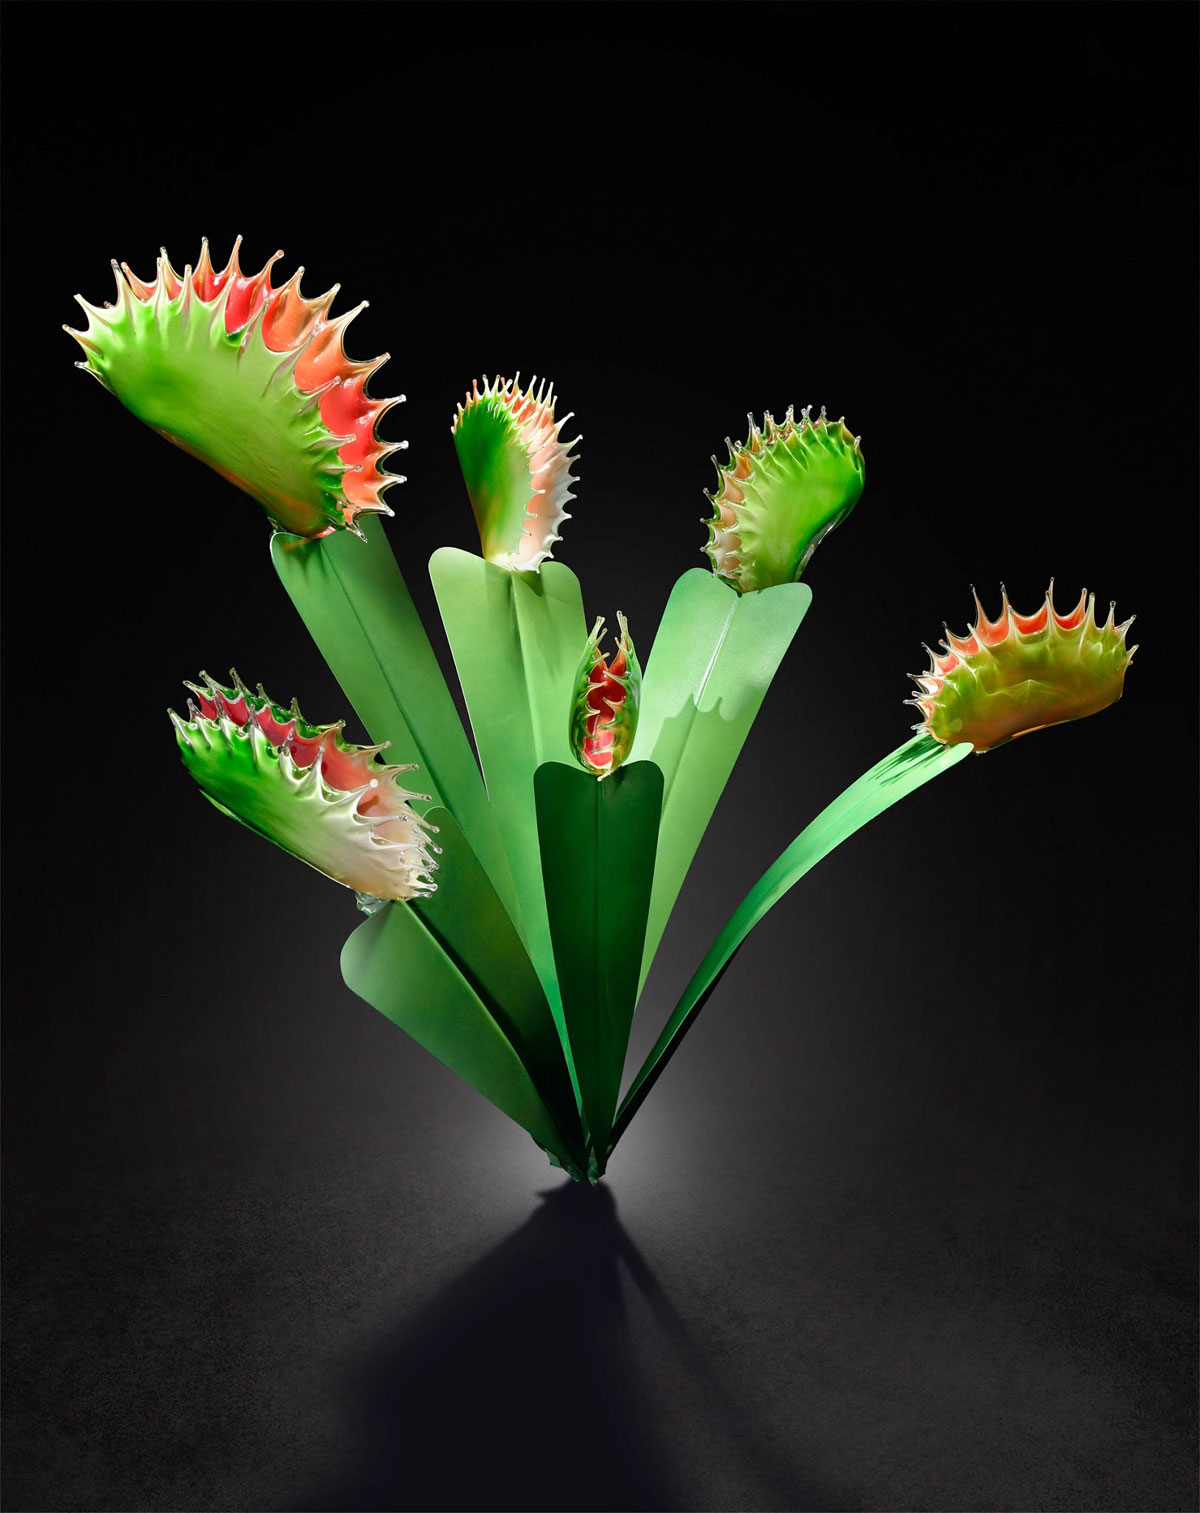 Gigantic And Realistic Flower Sculptures Made From Glass -4